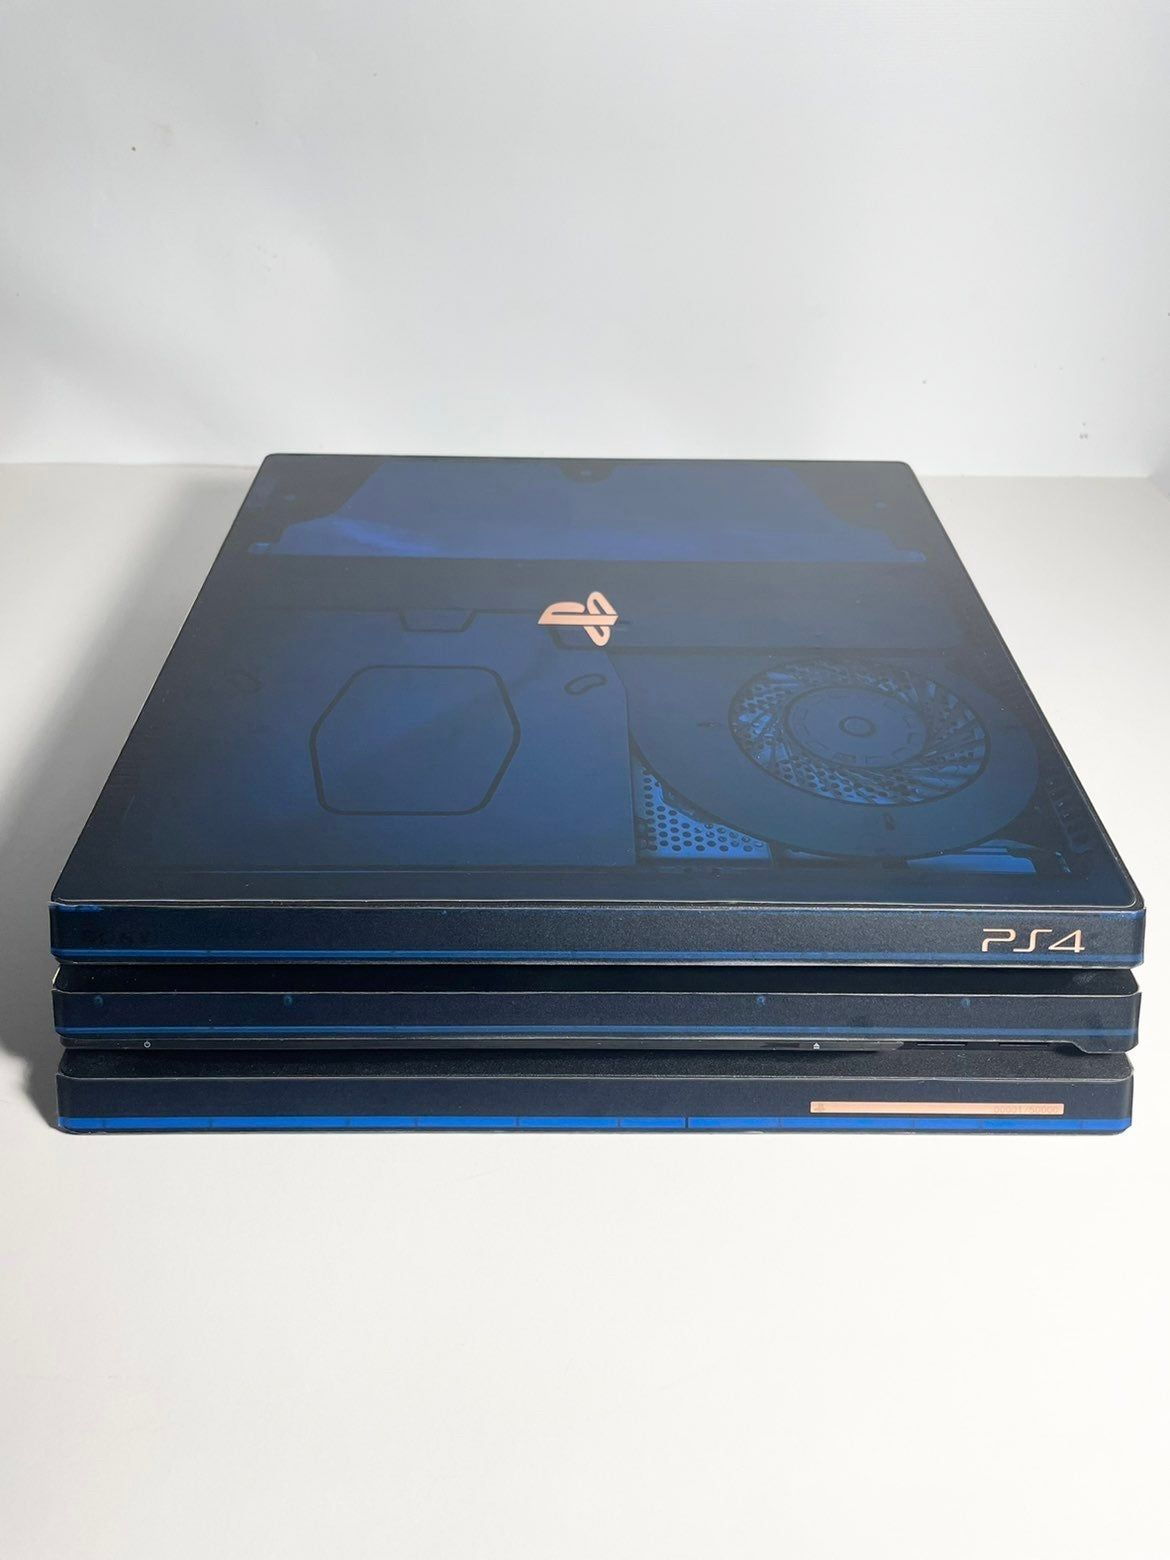 Sony PS4 Pro 1TB Red Dead Redemption 2 with VR and TV Bundle